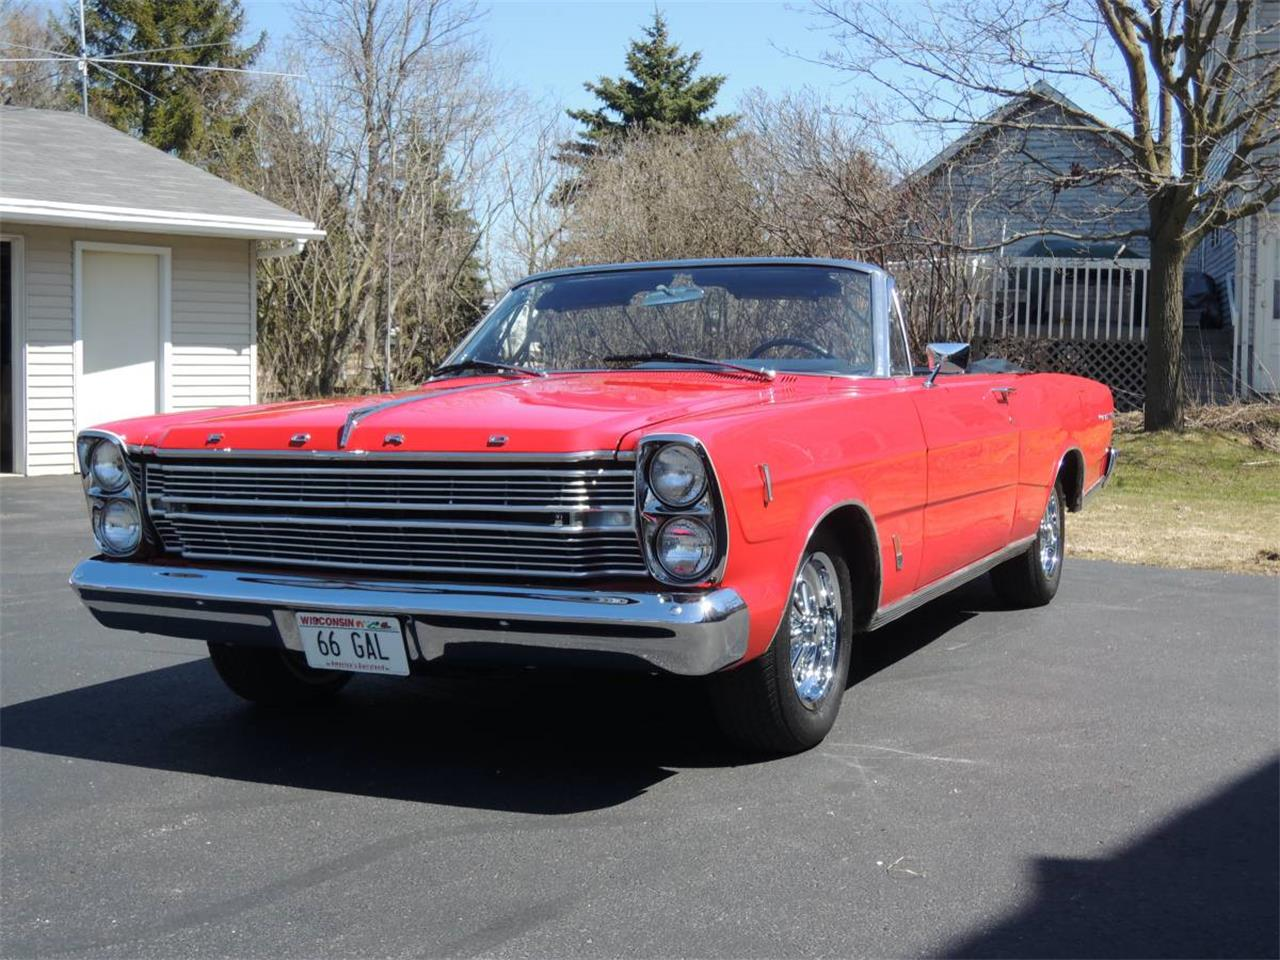 1966 Ford Galaxie 500 (CC-1362303) for sale in Denmark, Wisconsin